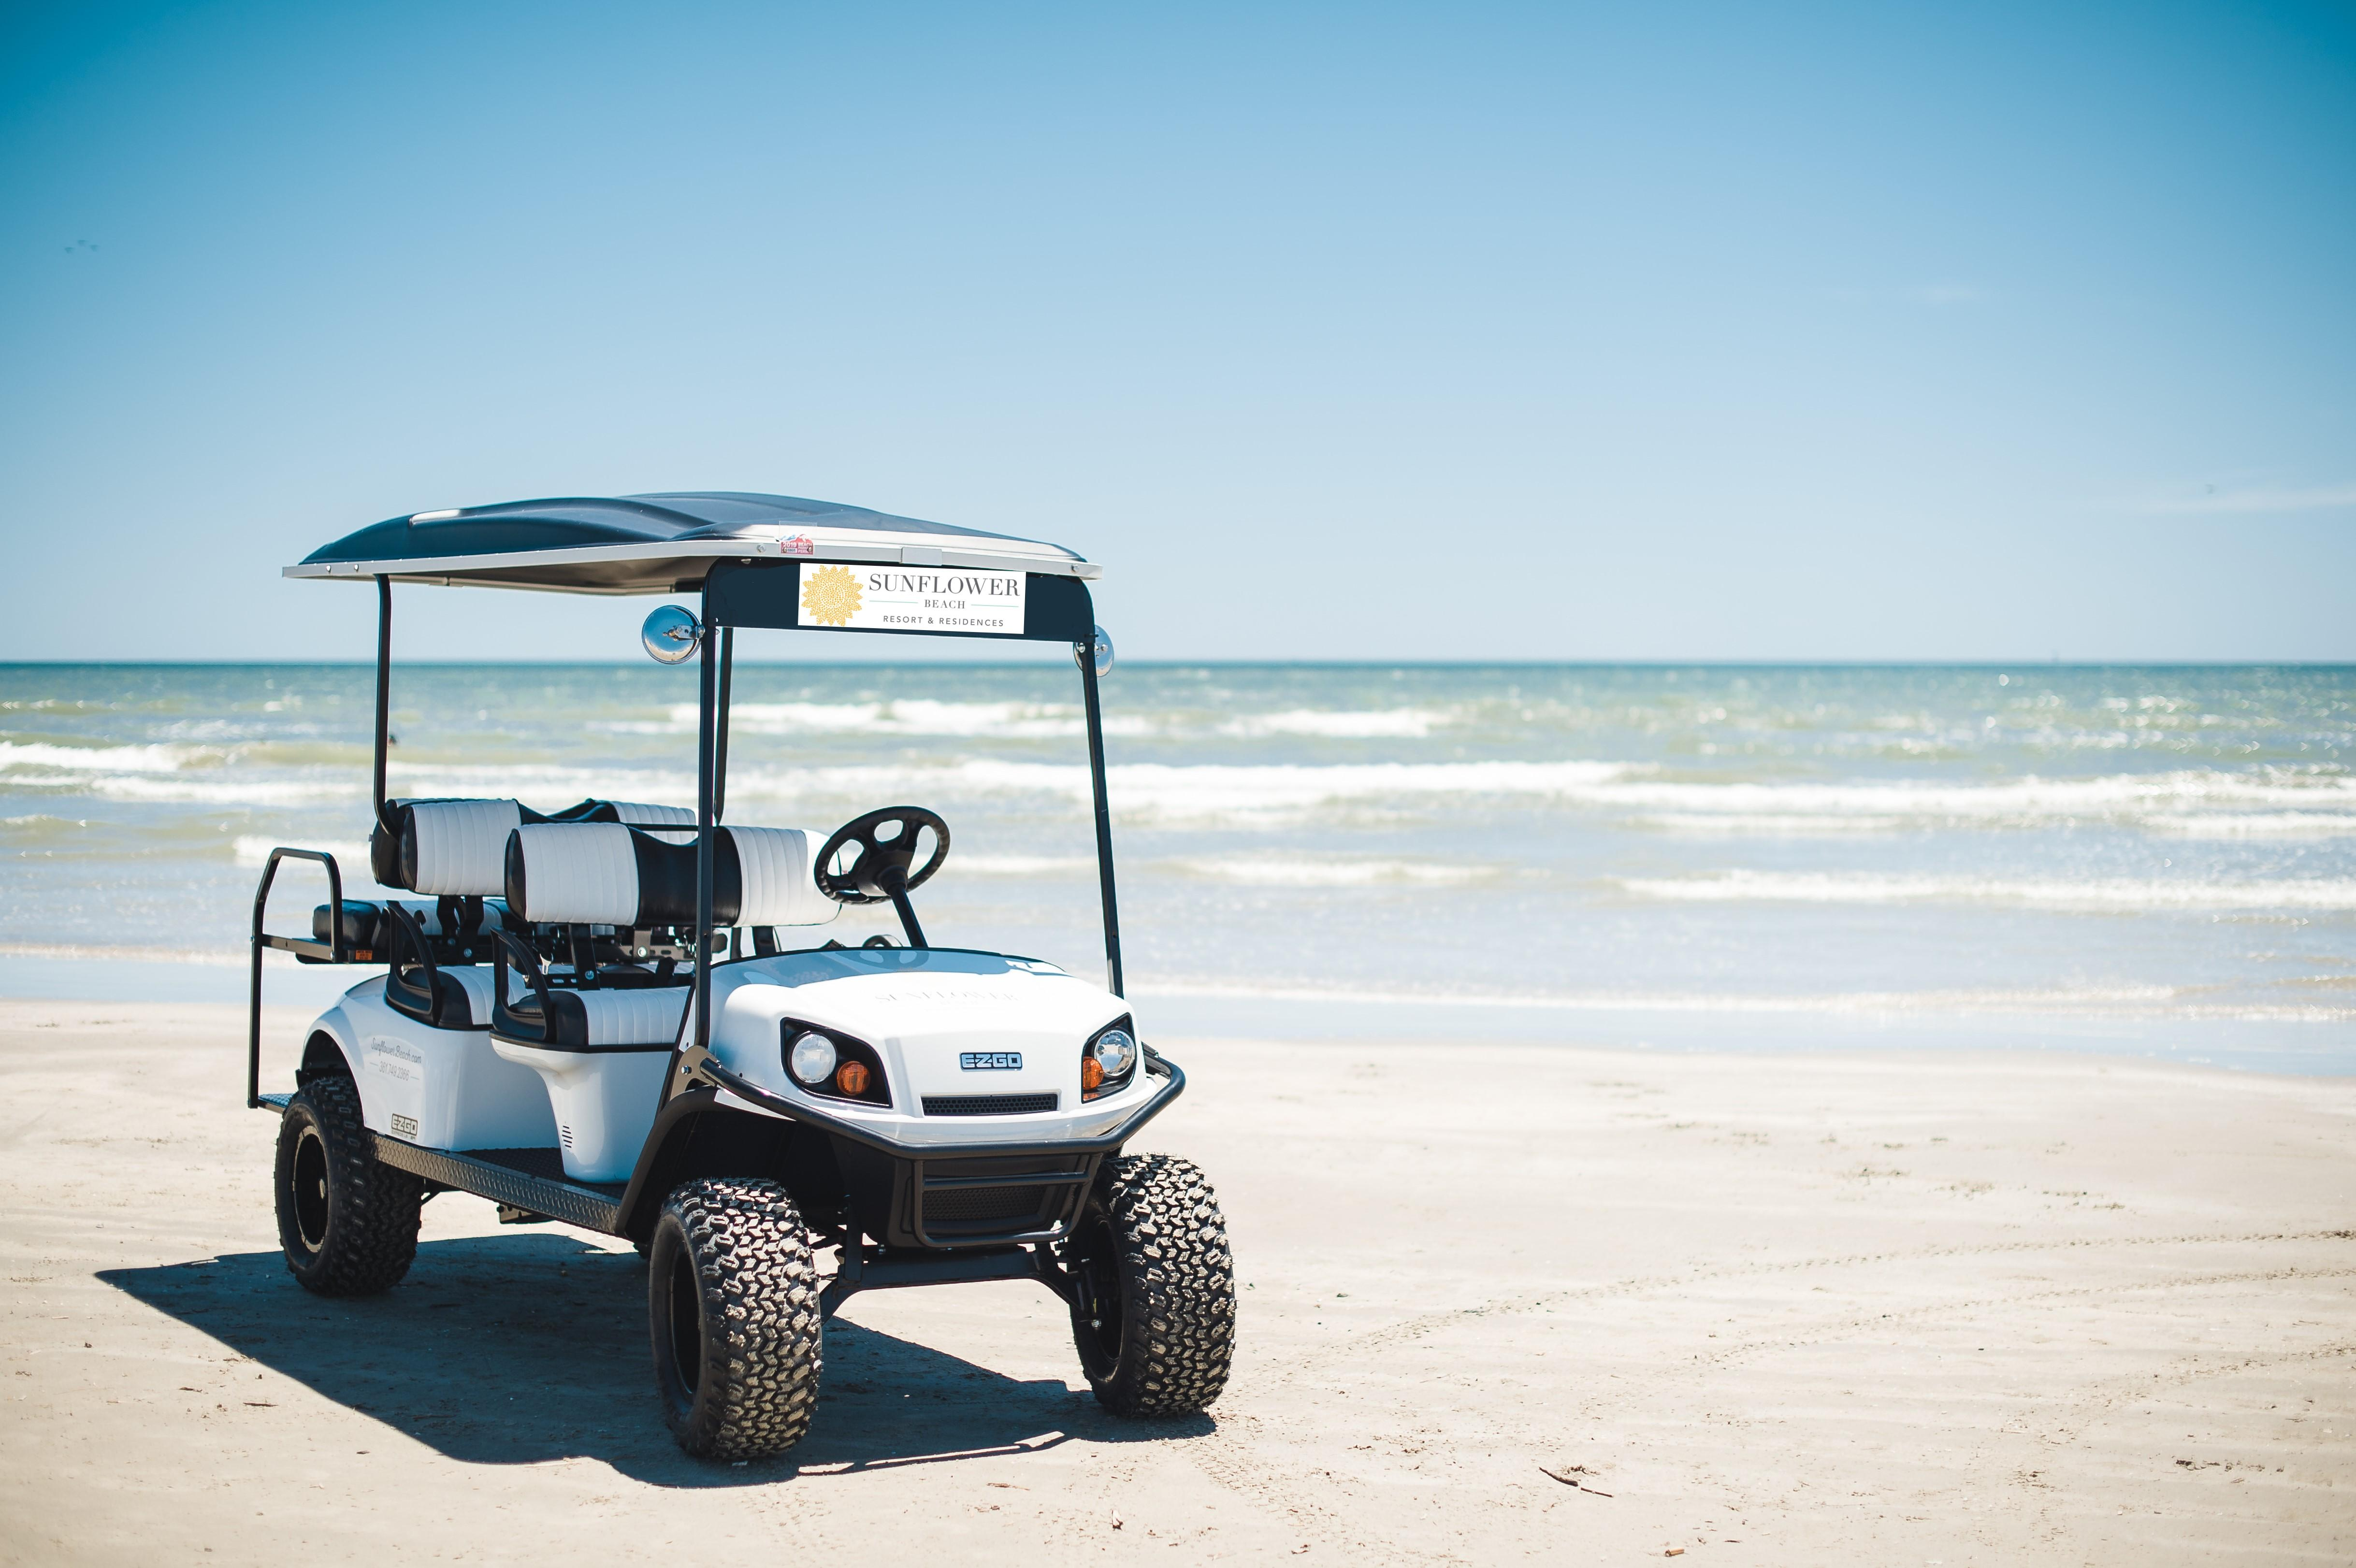 Cruise along the coast in a 6-seat golf course -- available to rent on-site.